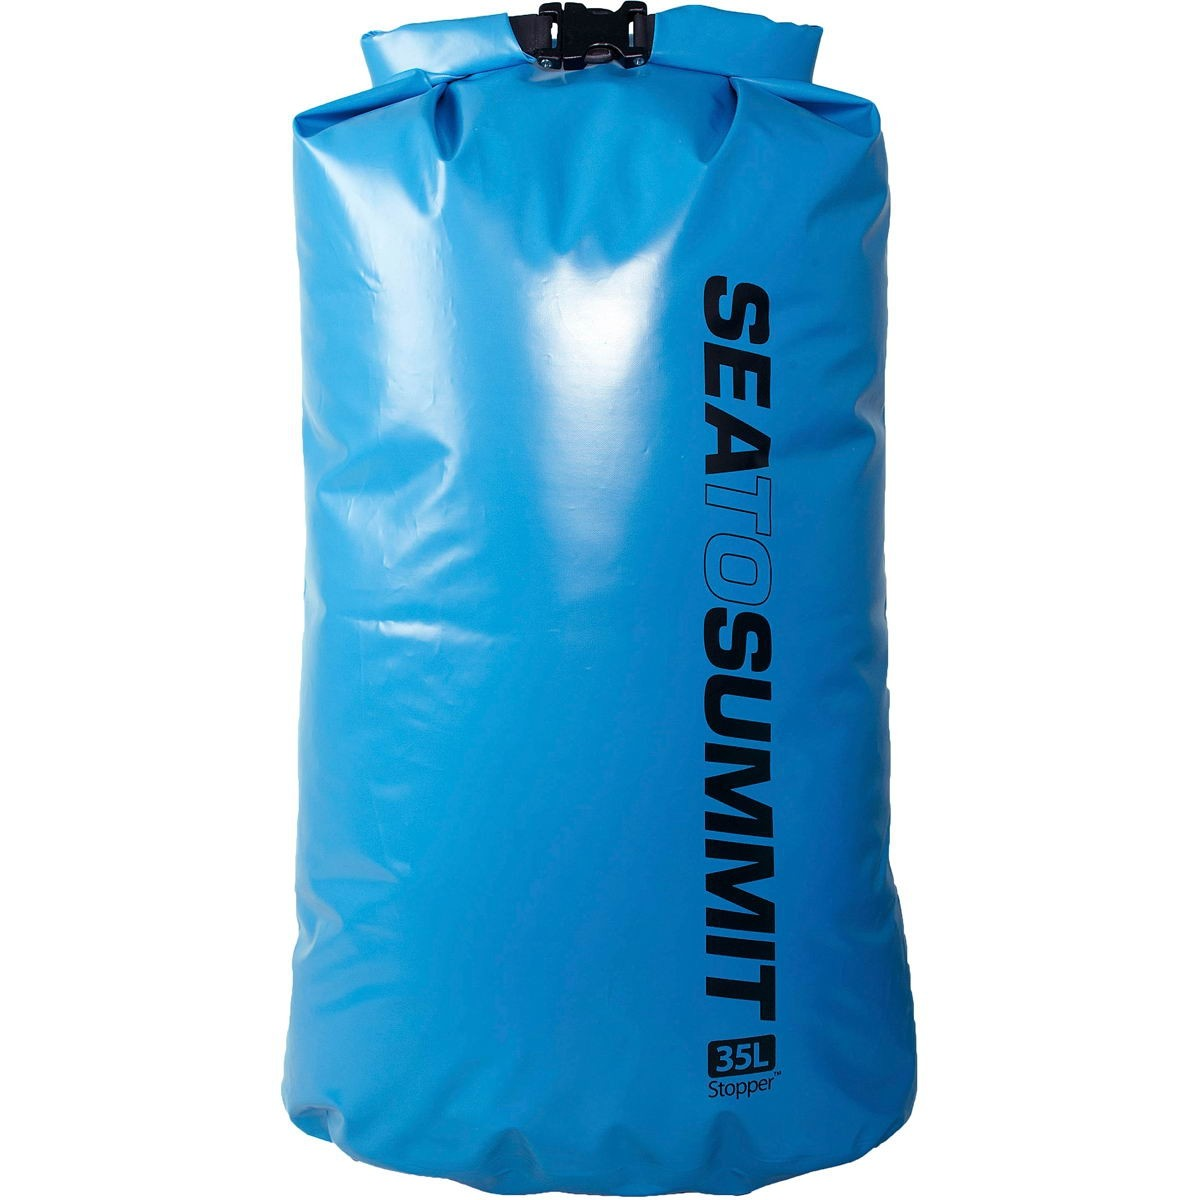 Sea To Summit Stopper Dry Bag 35L Blue